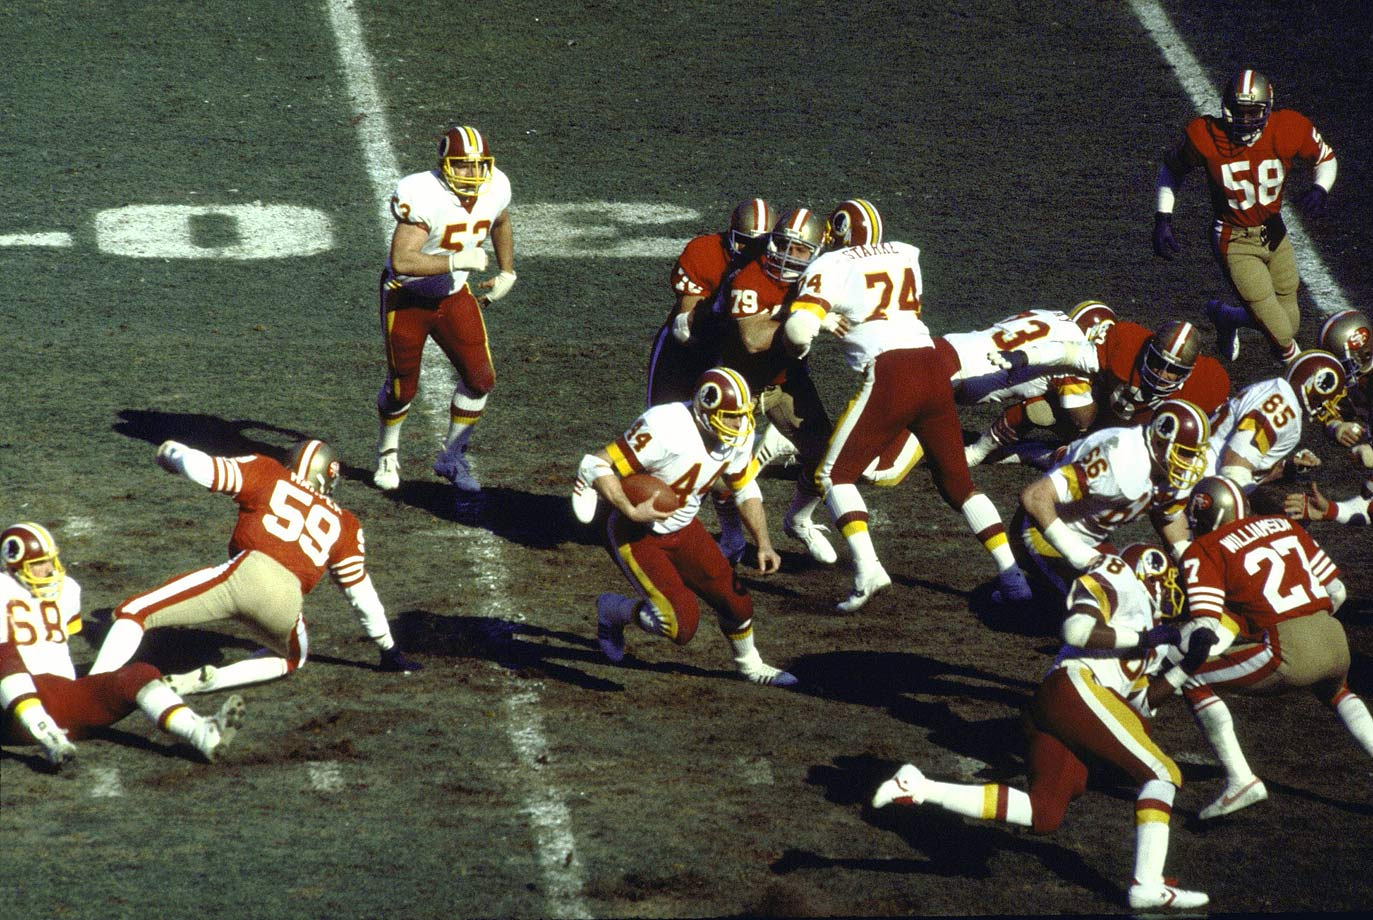 Washington entered the fourth with a commanding 21-0 lead, but the 49ers mounted a furious comeback, tying the game at 21 with just over seven minutes left. The Redskins responded with a clinical 13-play, 78-yard drive that took six minutes off the clock and set up kicker Mark Moseley—who was 0-for-4 on field goals in the game—for his game-winning 25-yarder. Washington's John Riggins (44) rushed for 123 yards and two touchdowns.